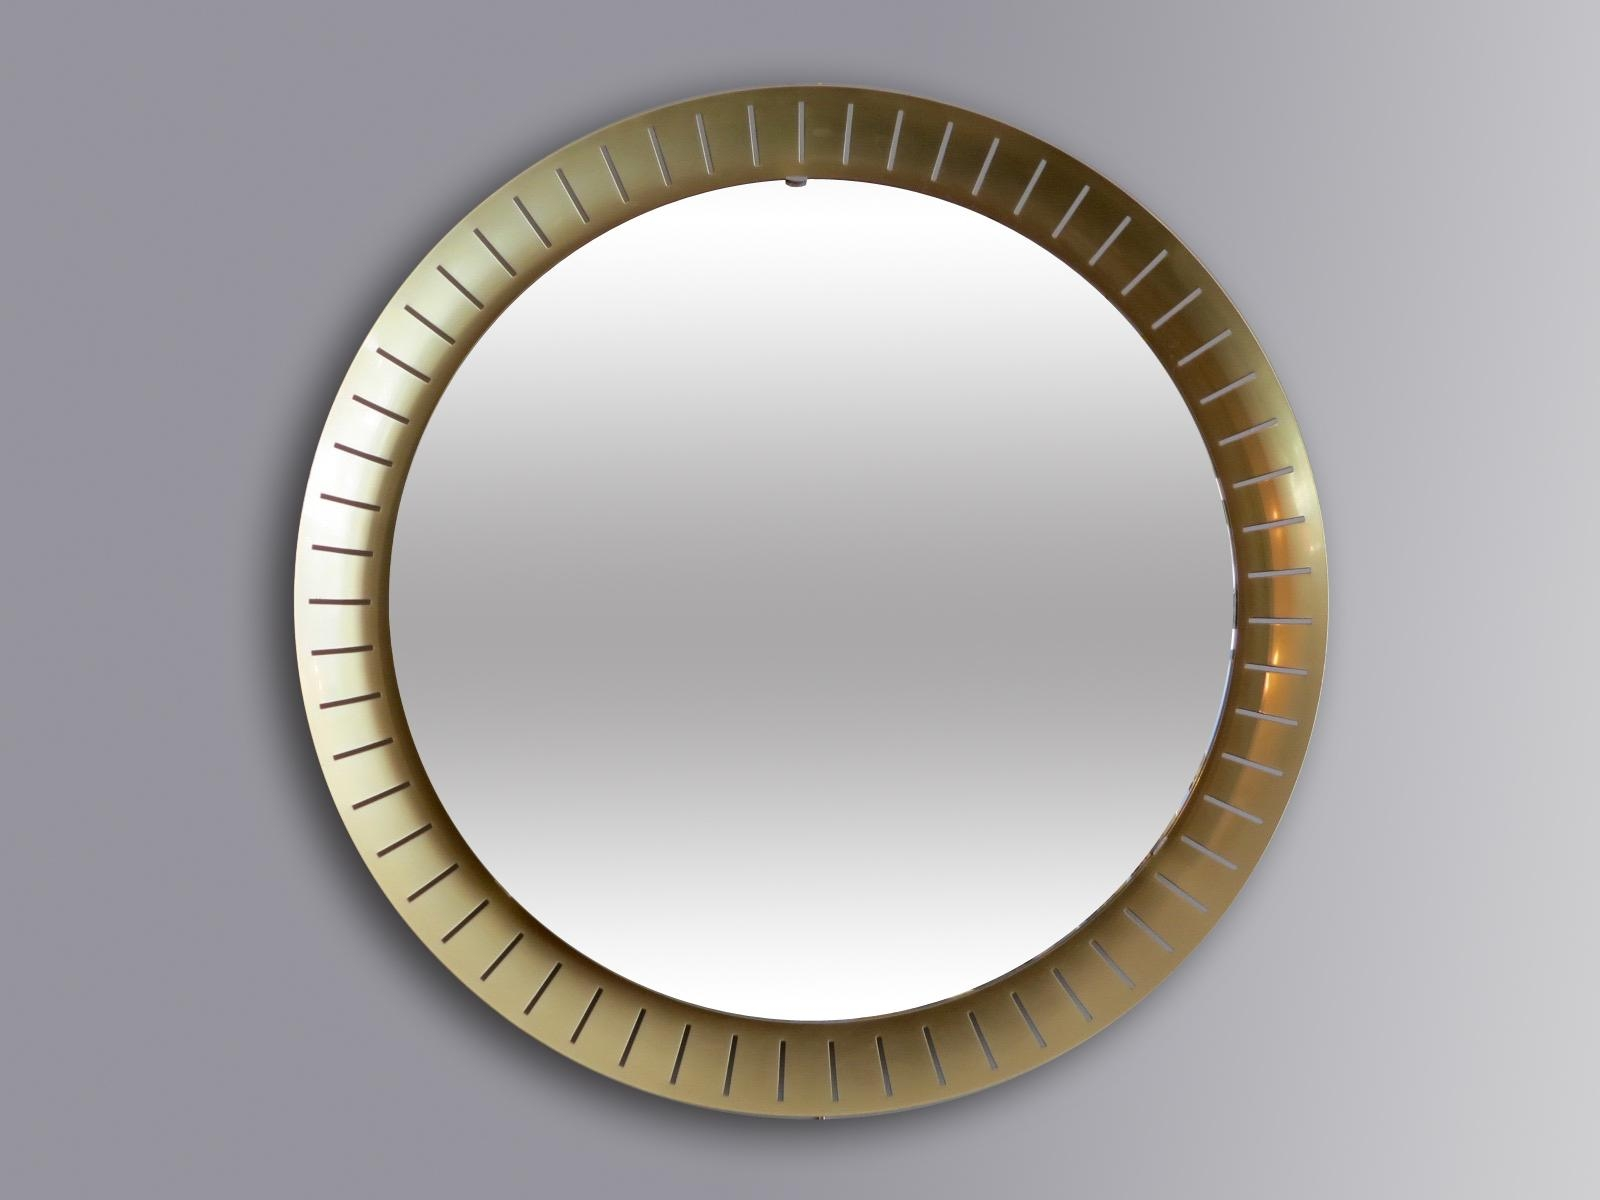 Large Circular Mirrors From Stilnovo, 1971, Set Of 2 For Sale At Intended For Large Circular Mirror (Image 7 of 20)